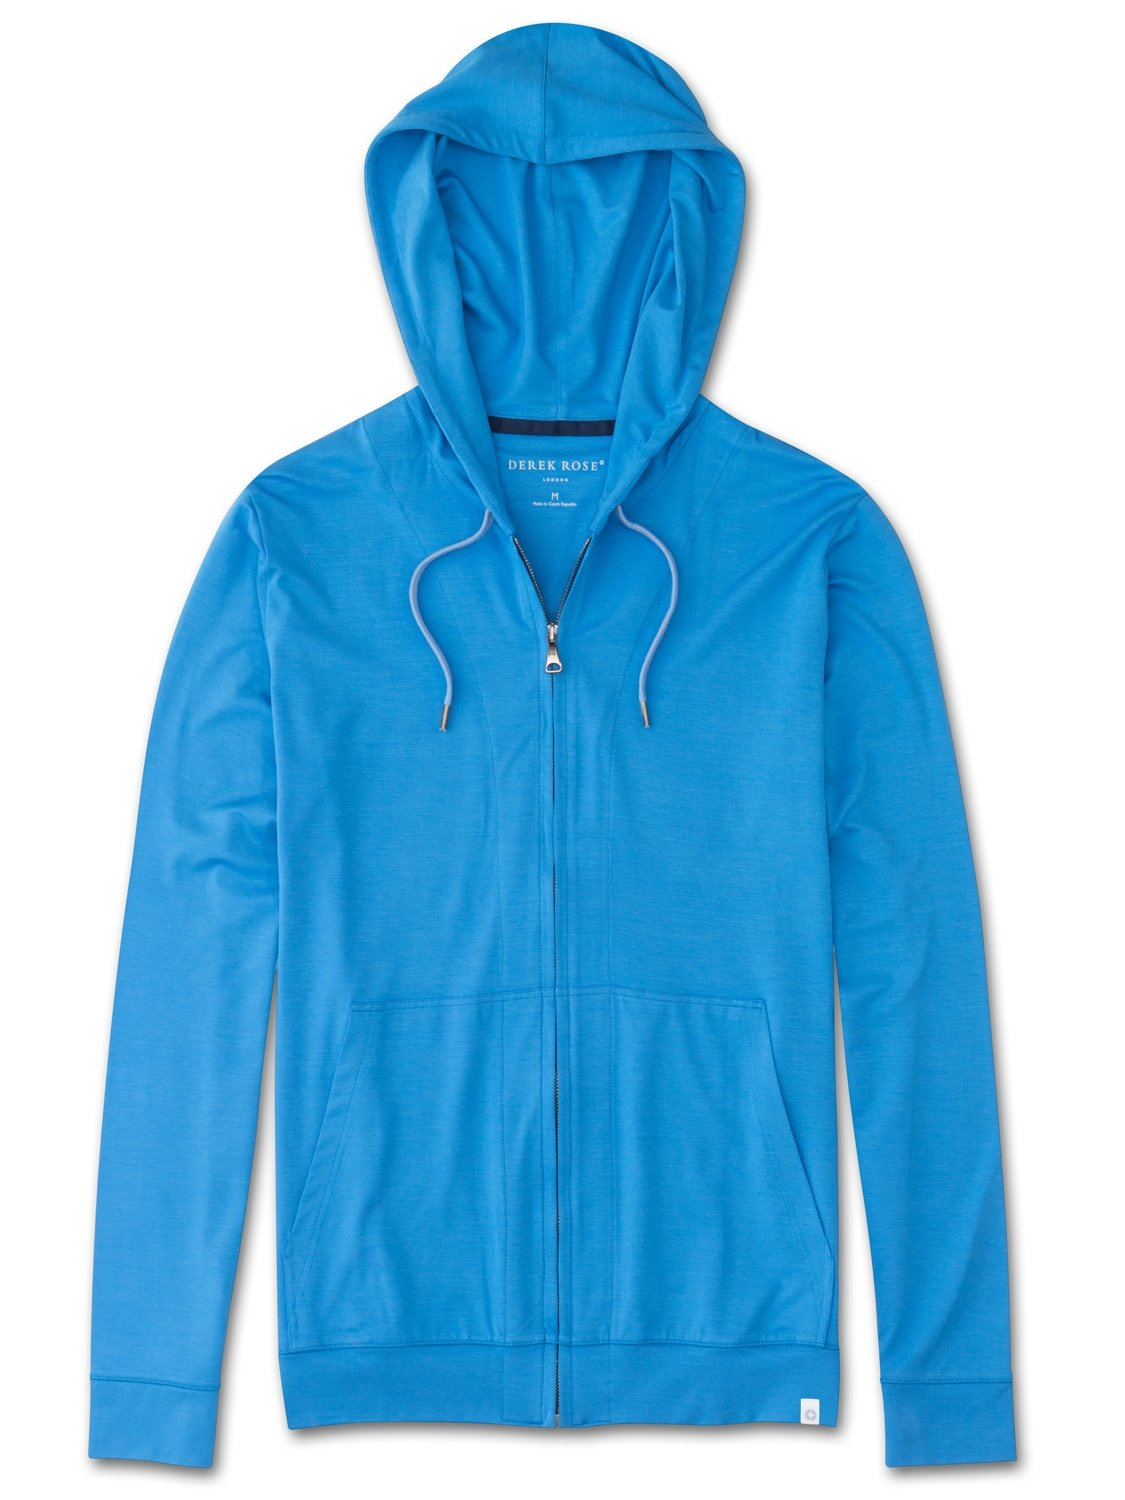 Men's Jersey Hoodie Basel 4 Micro Modal Stretch Blue